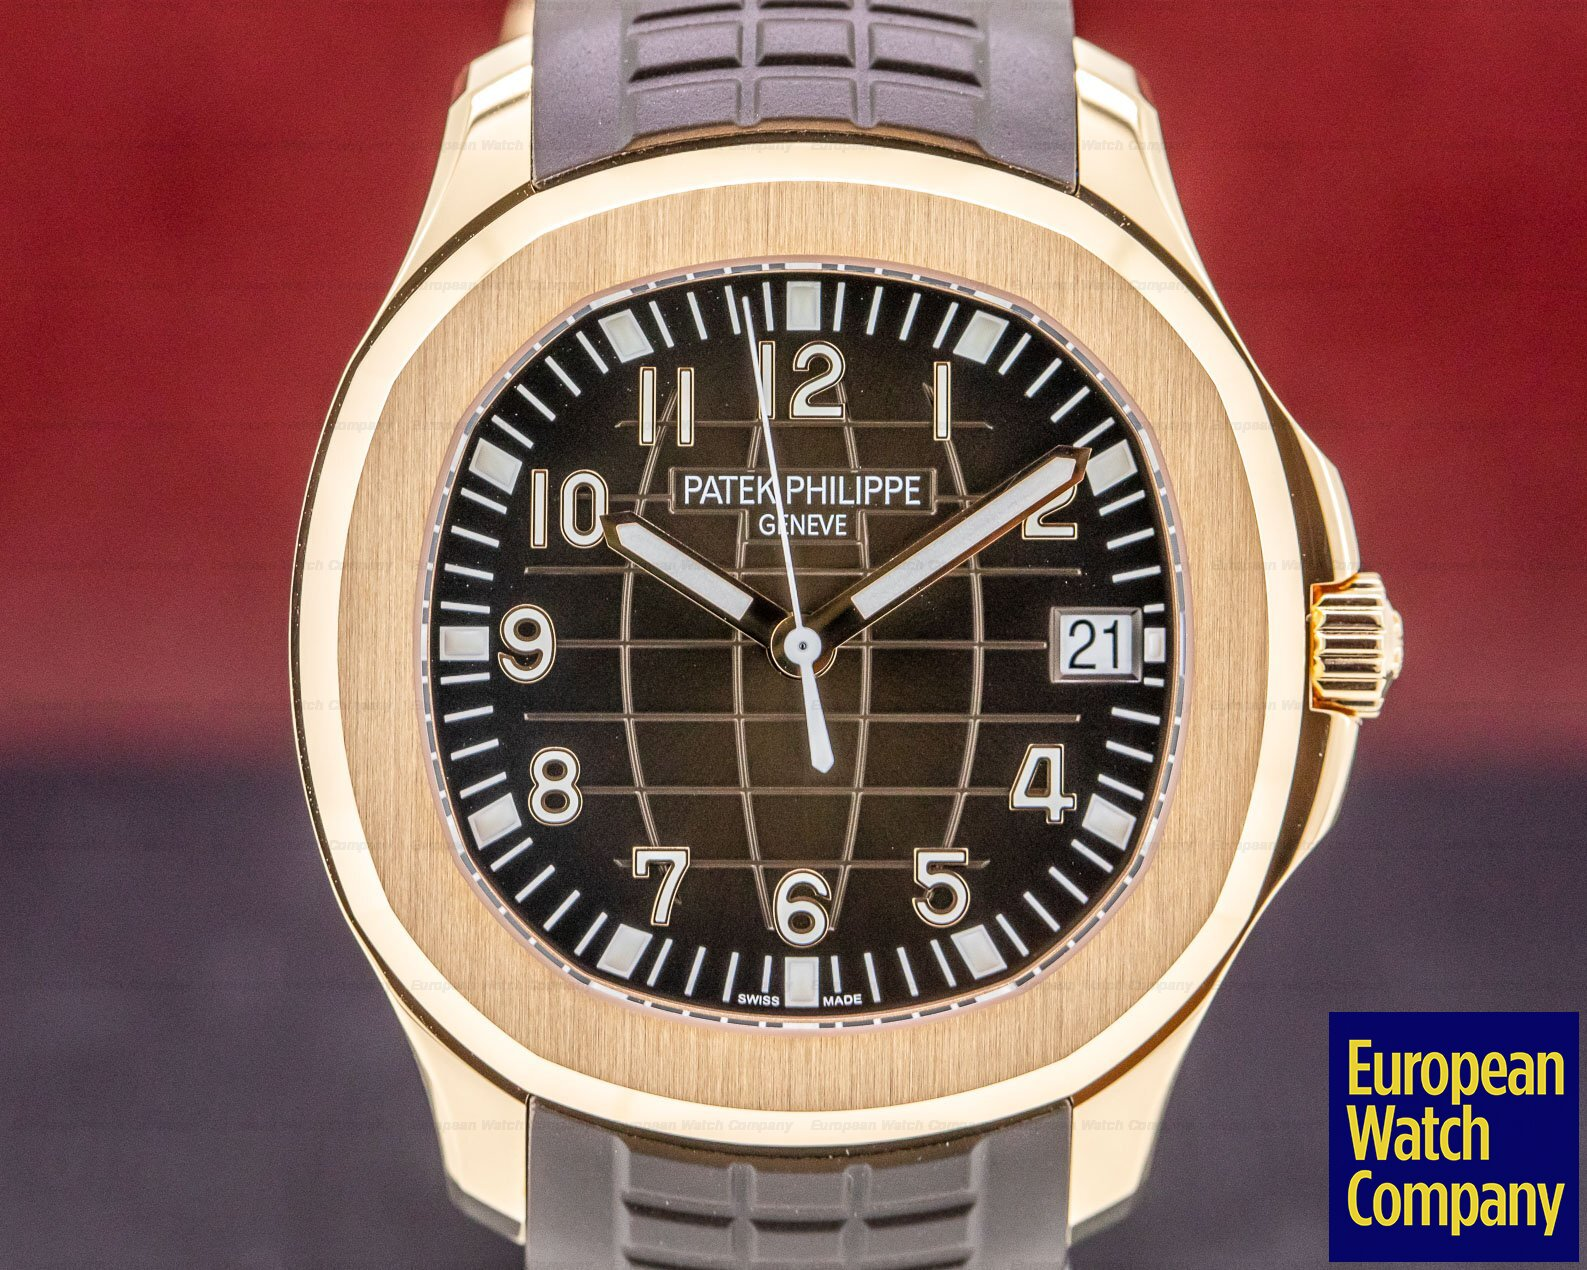 Patek Philippe 5167R-001 Aquanaut 18K Rose Gold / Brown Dial 2019